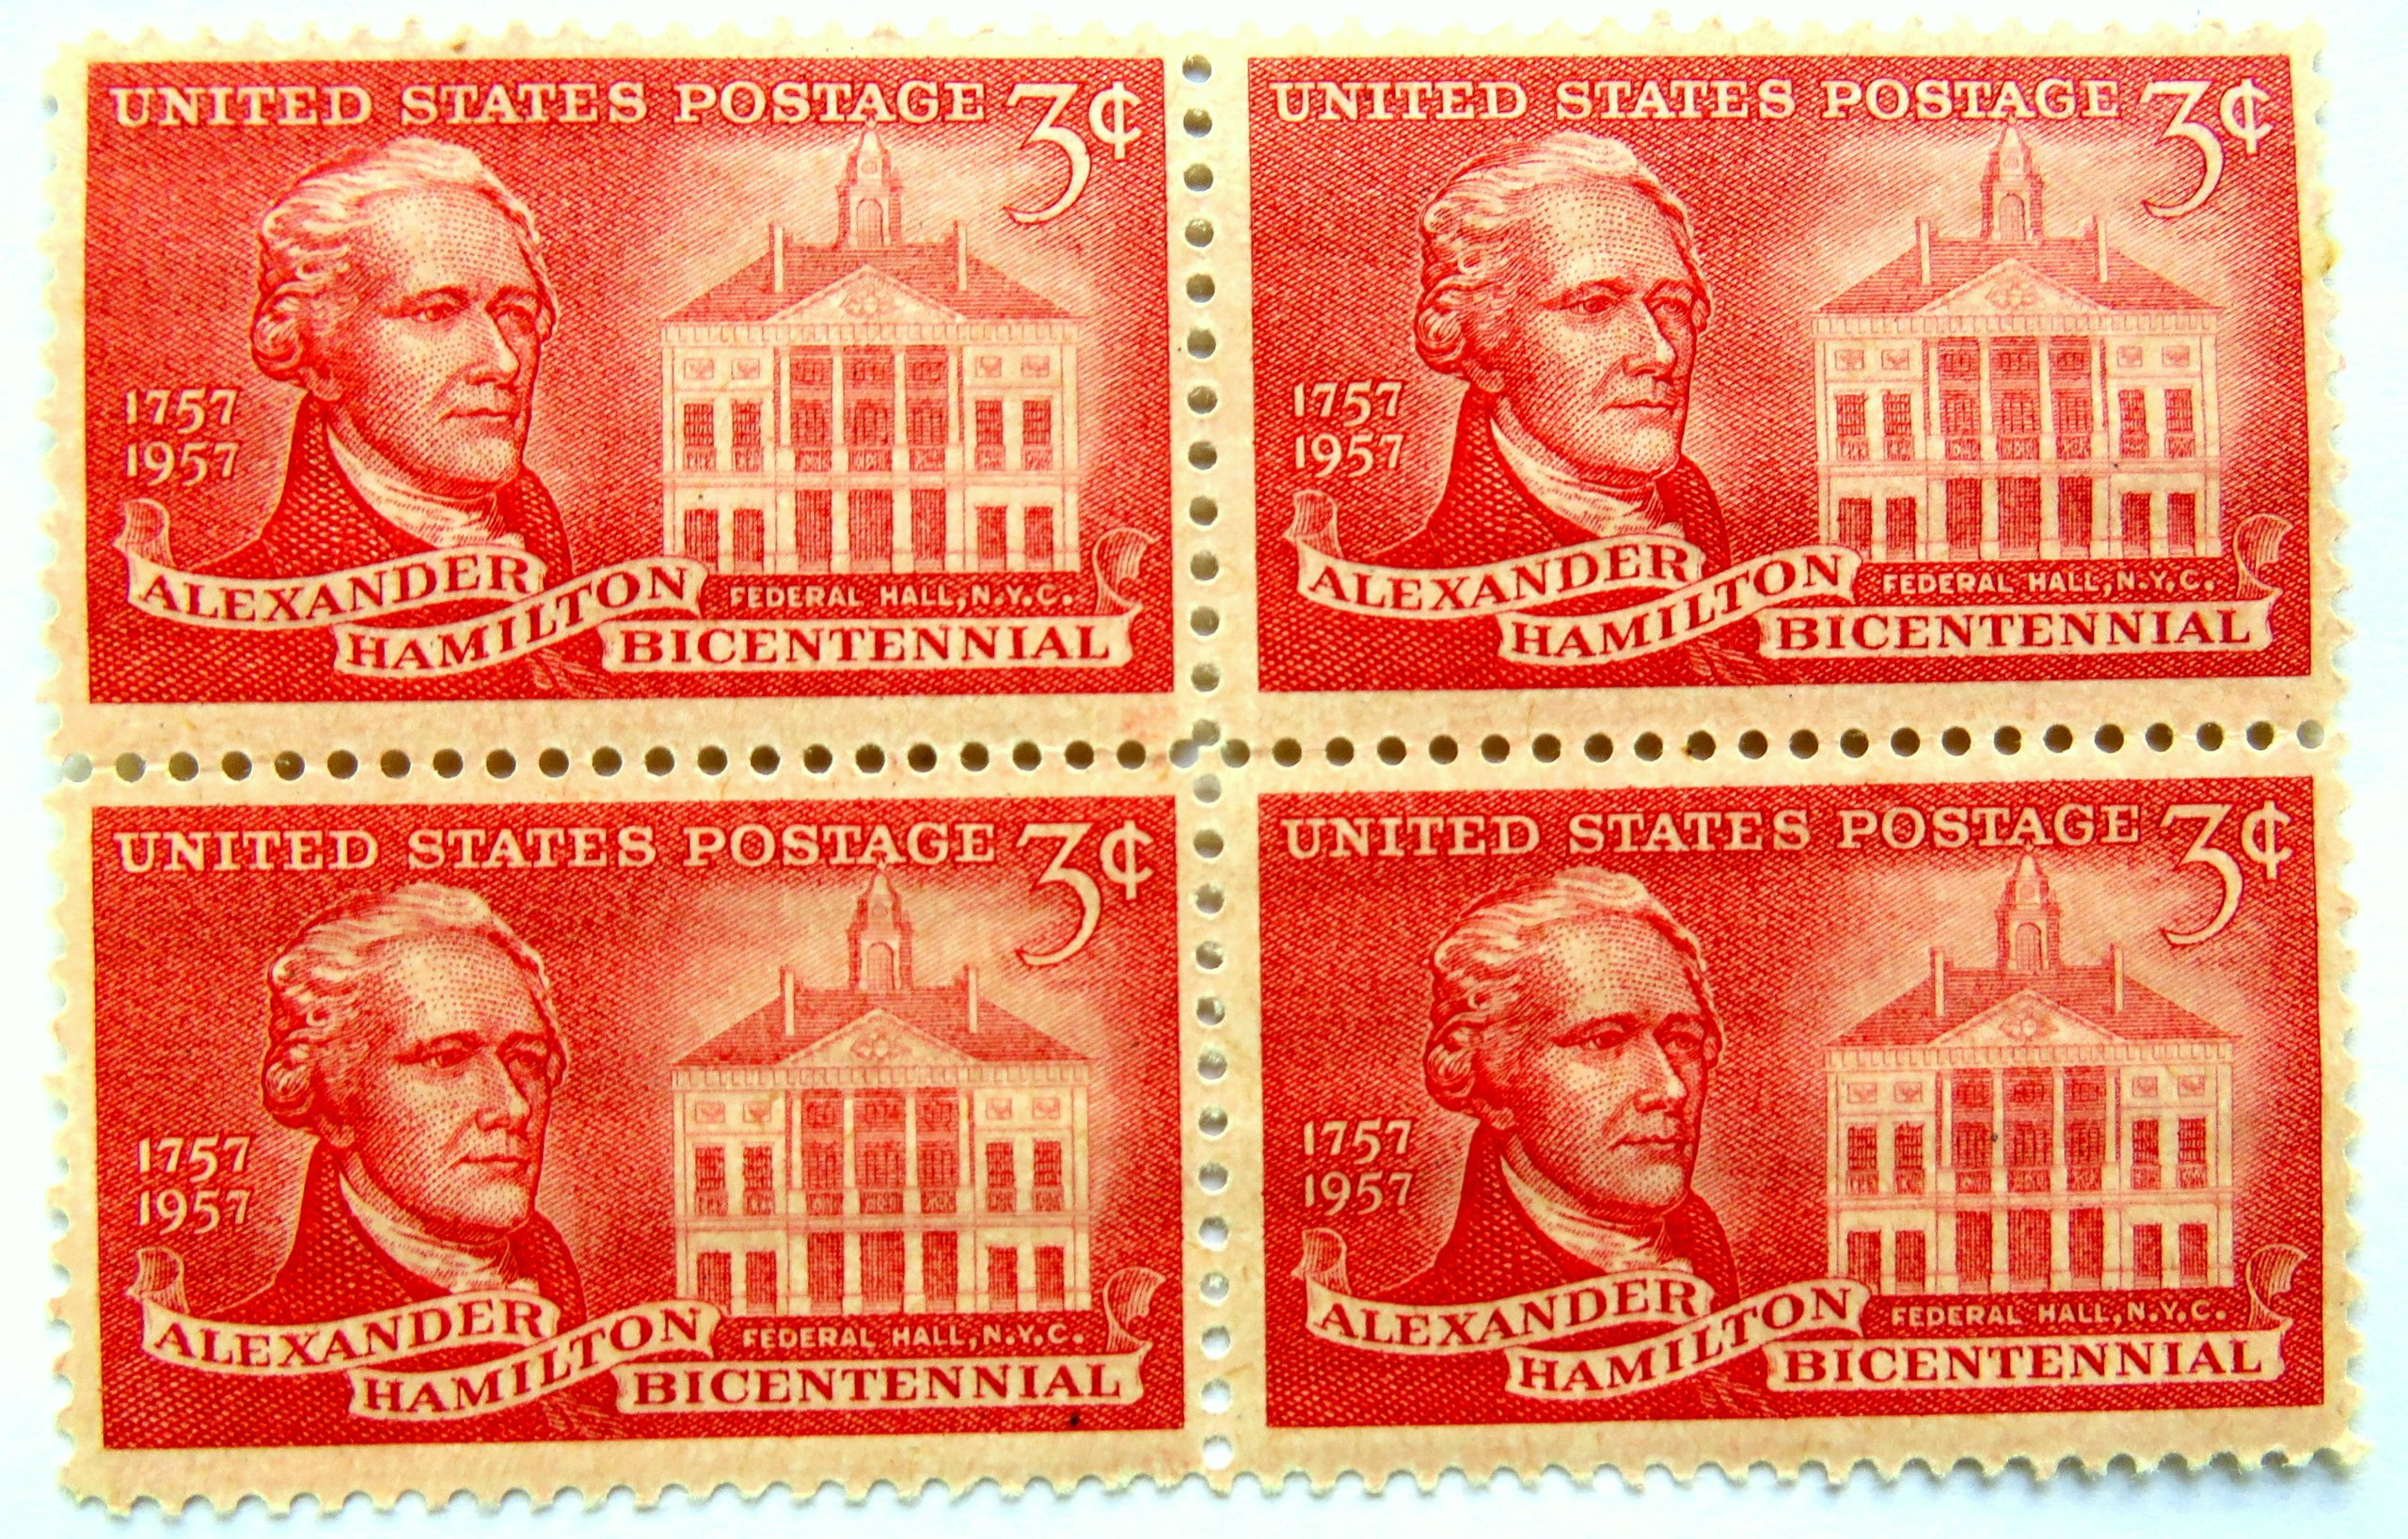 Scott # 1086 Alexander Hamilton Bicentennial 3 Cent Stamp Block of 4 Mint Never Hinged